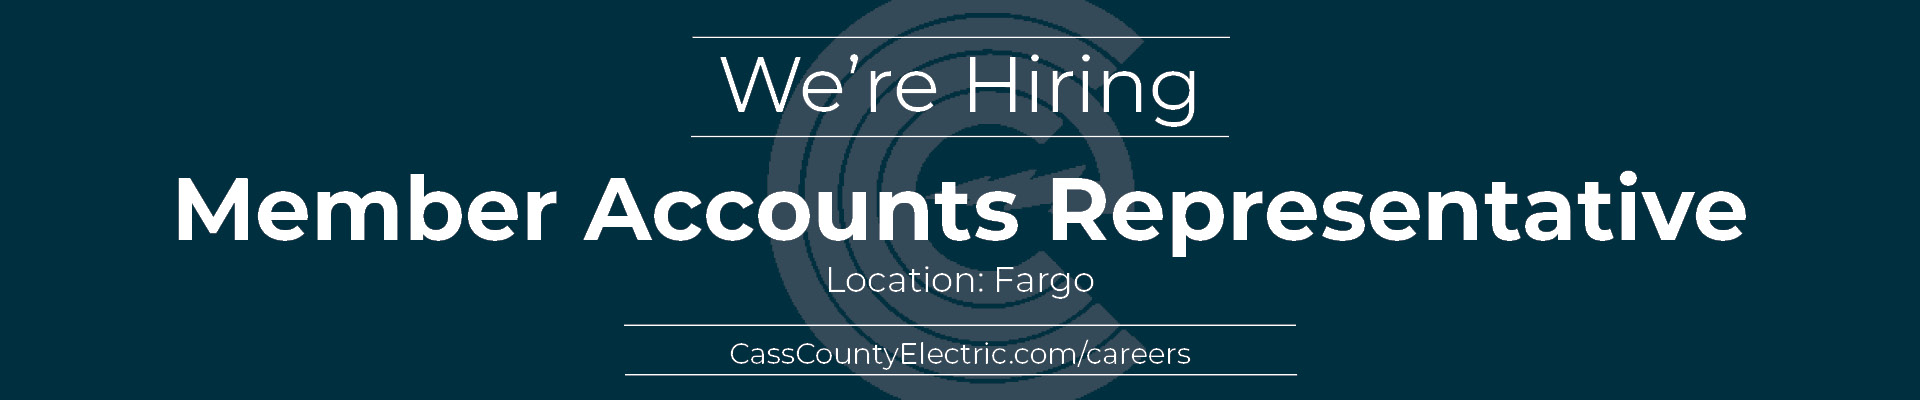 Now hiring member accounts representative